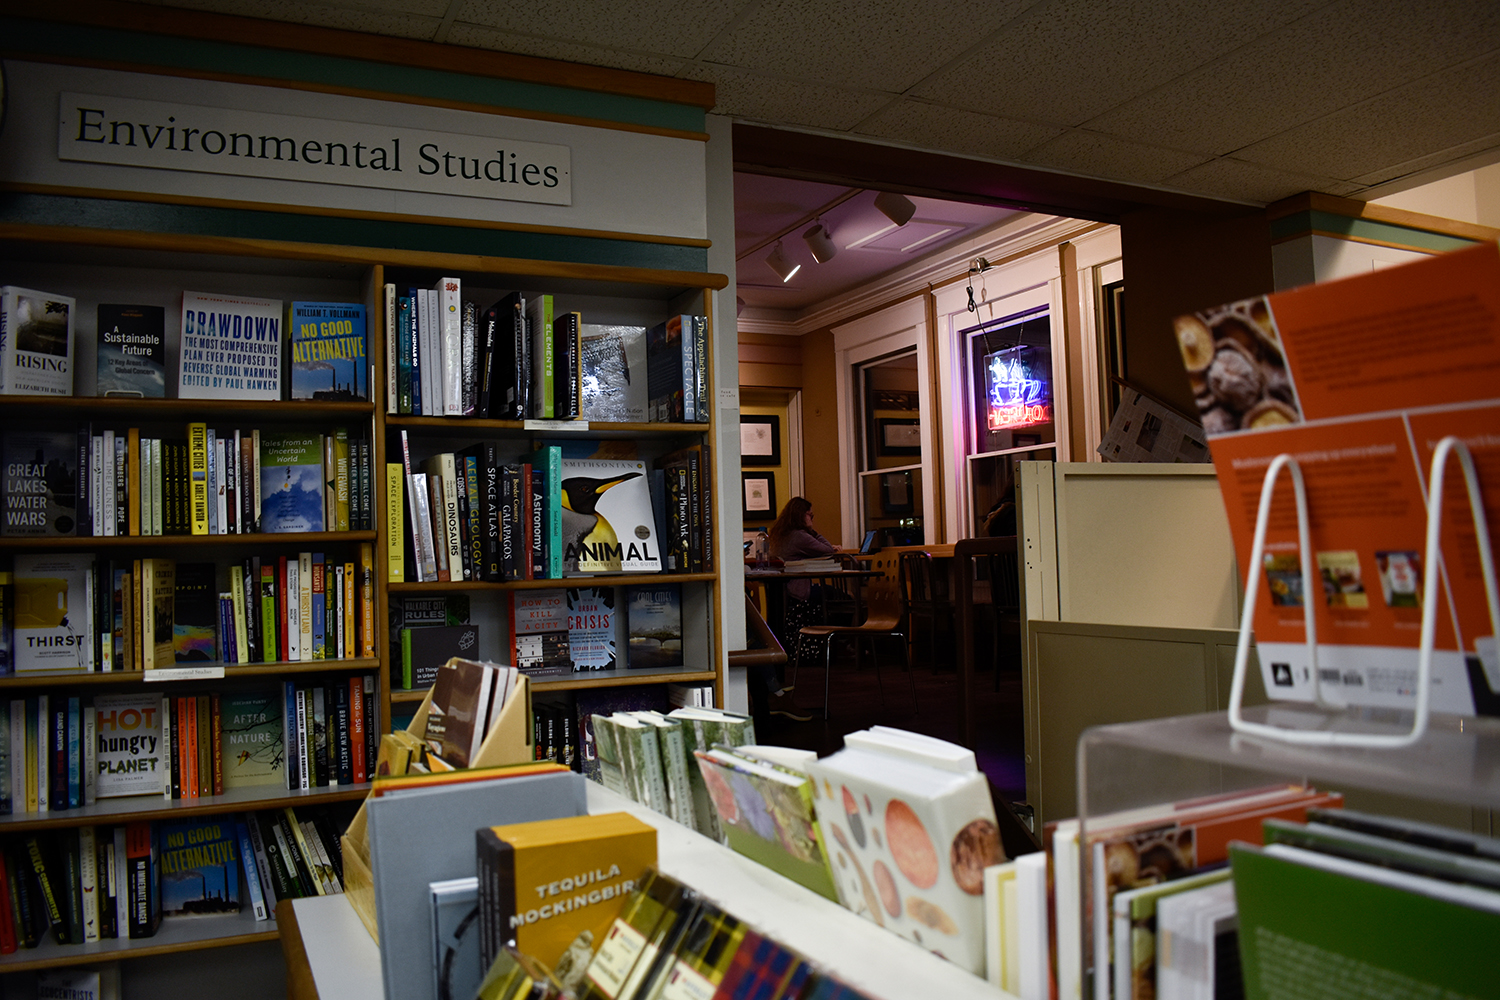 Prairie Lights, an independent bookstore downtown, is seen on Monday, November 12, 2018. (Sid Peterson/The Daily Iowan)